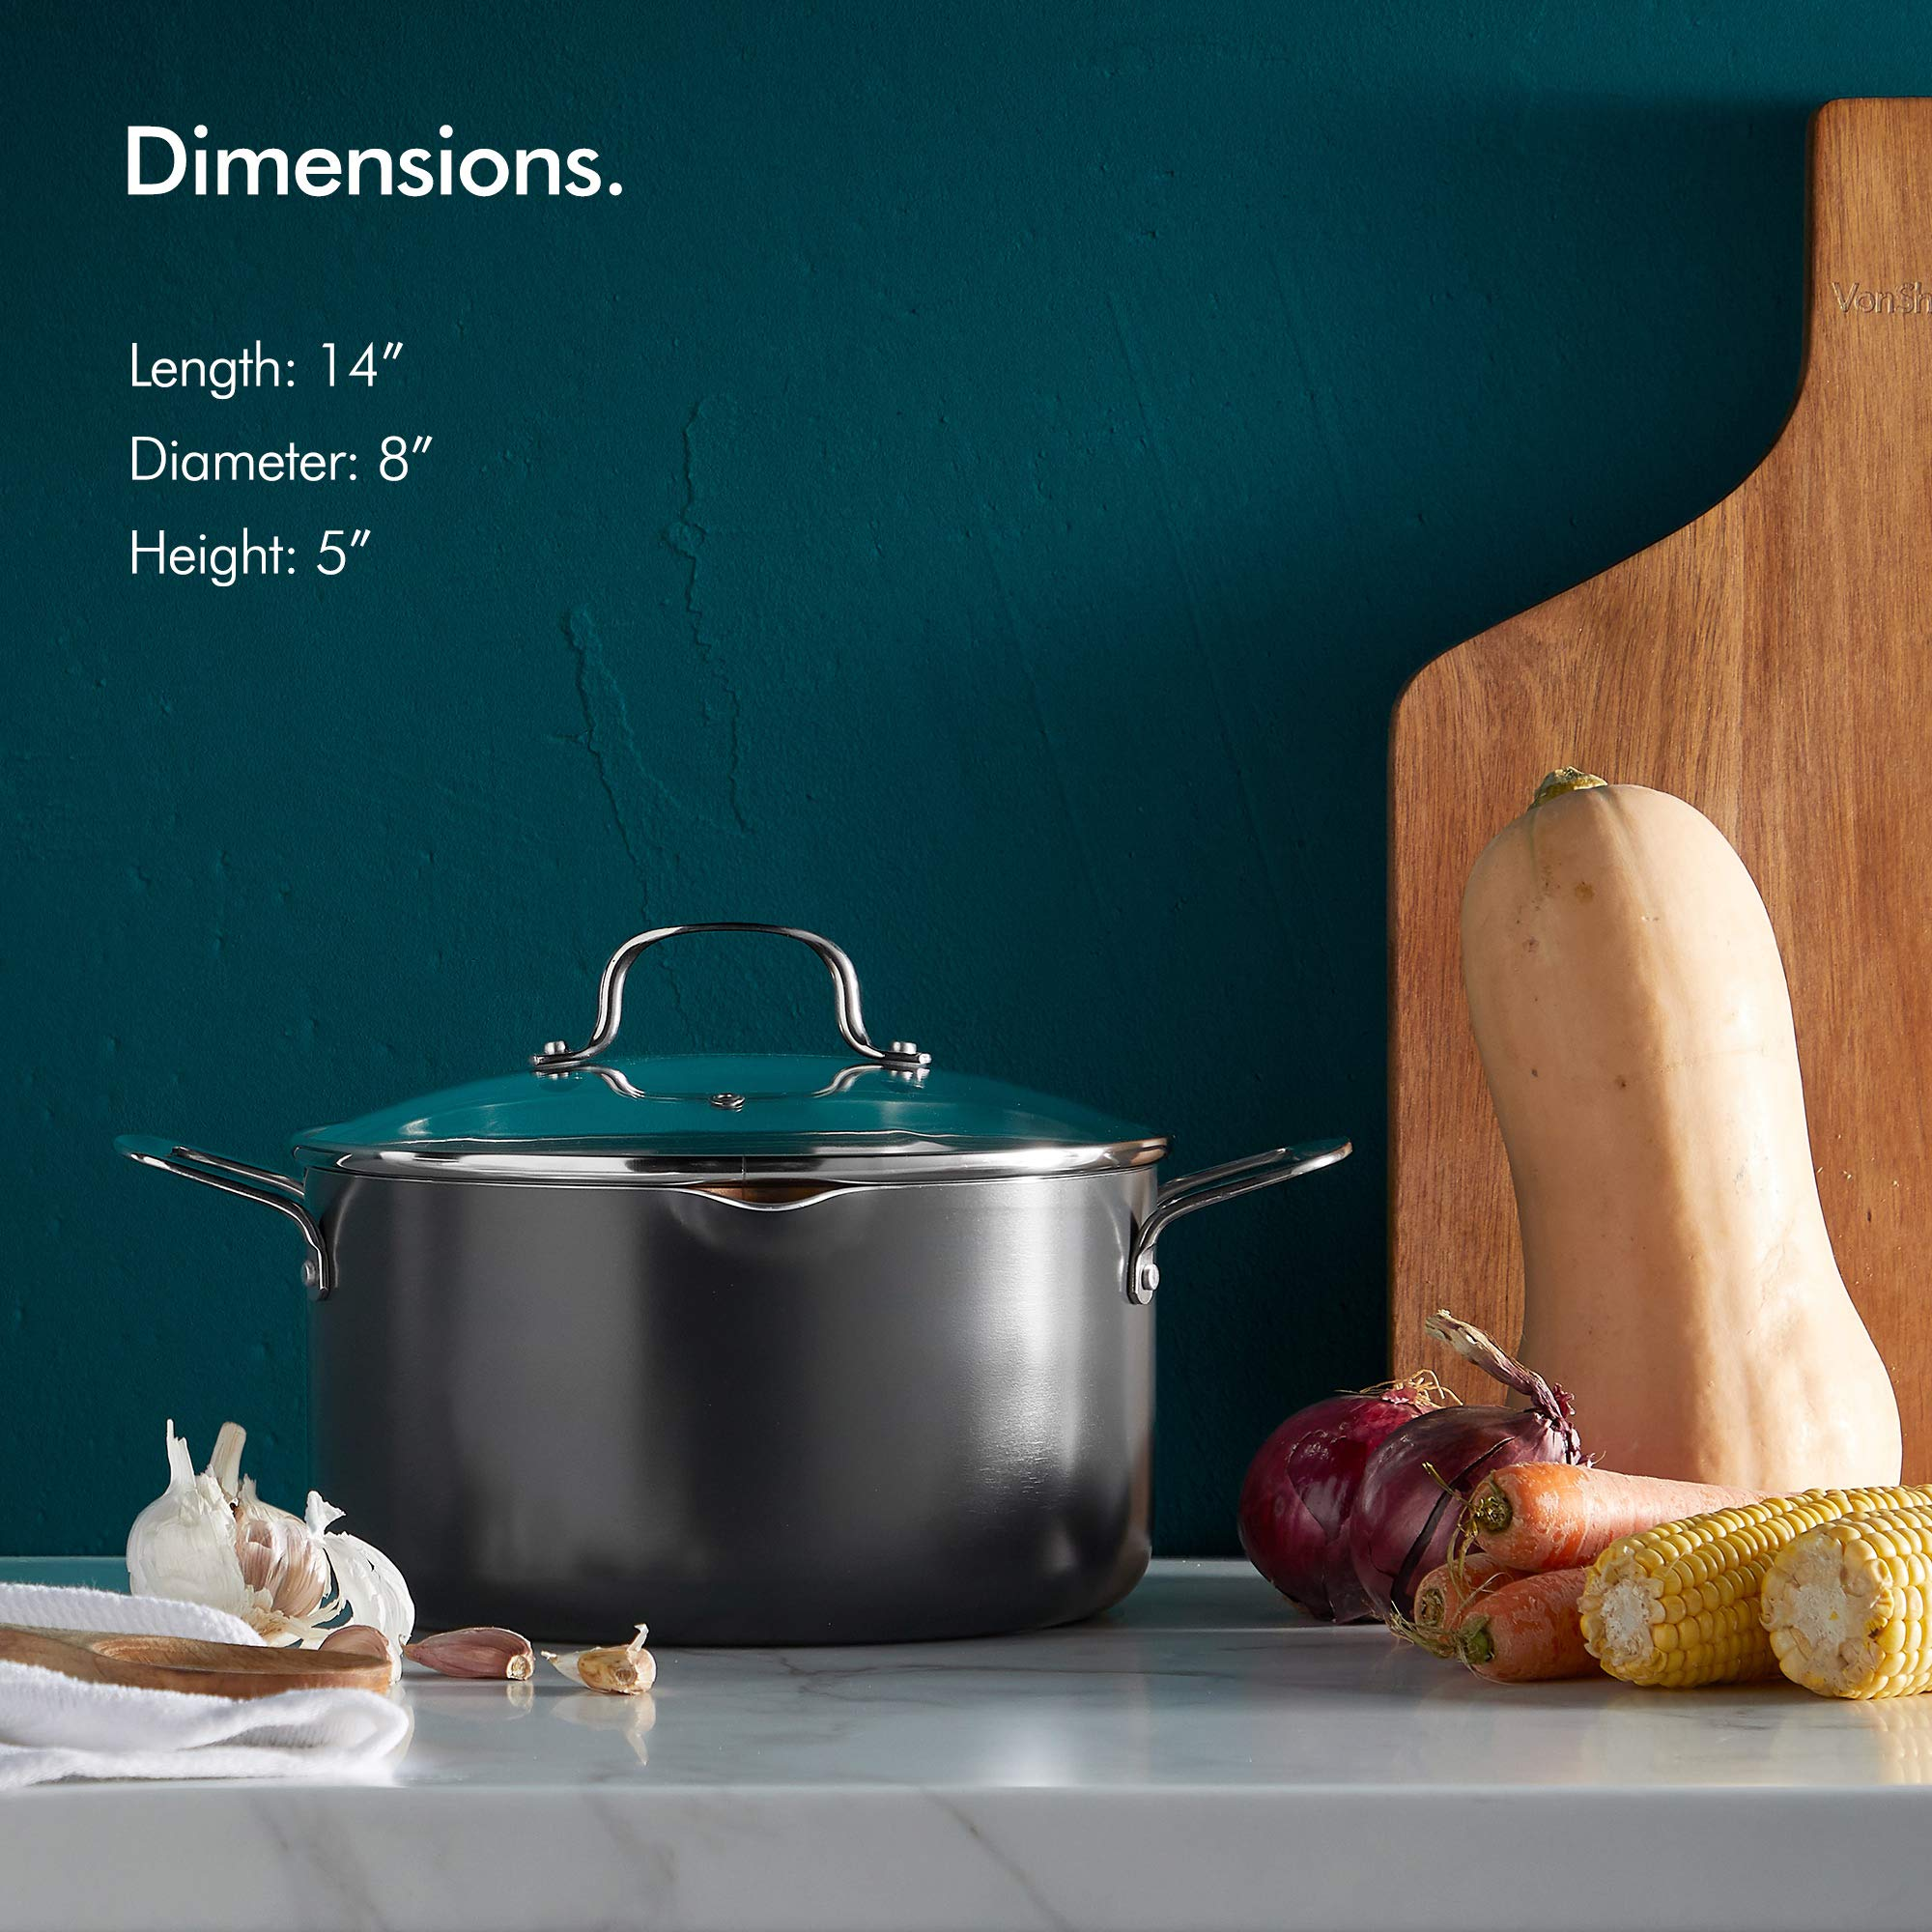 VonShef Casserole and Pasta Multi Pot with Strainer Lid, Easy Clean, Non-Stick Copper-Colored Interior, Stainless Steel Handles and Tempered Glass Lid, Induction Hob Ready, Copper, 5 Quart Capacity by VonShef (Image #2)